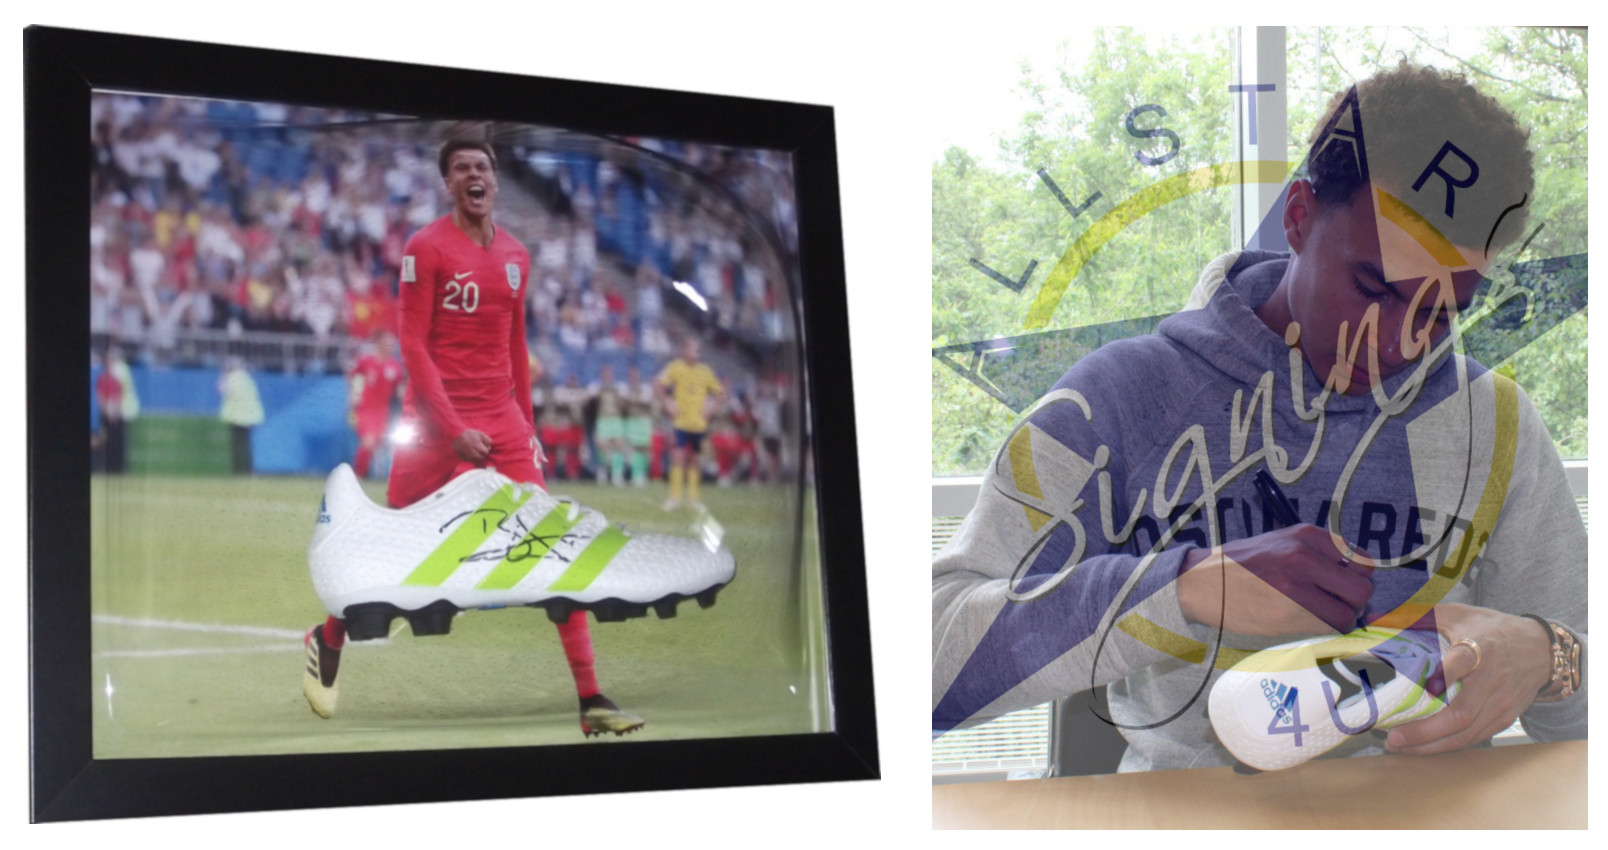 Dele Alli England Signed & Framed Football Boot Celebrating Russia 2018 goal against Sweden